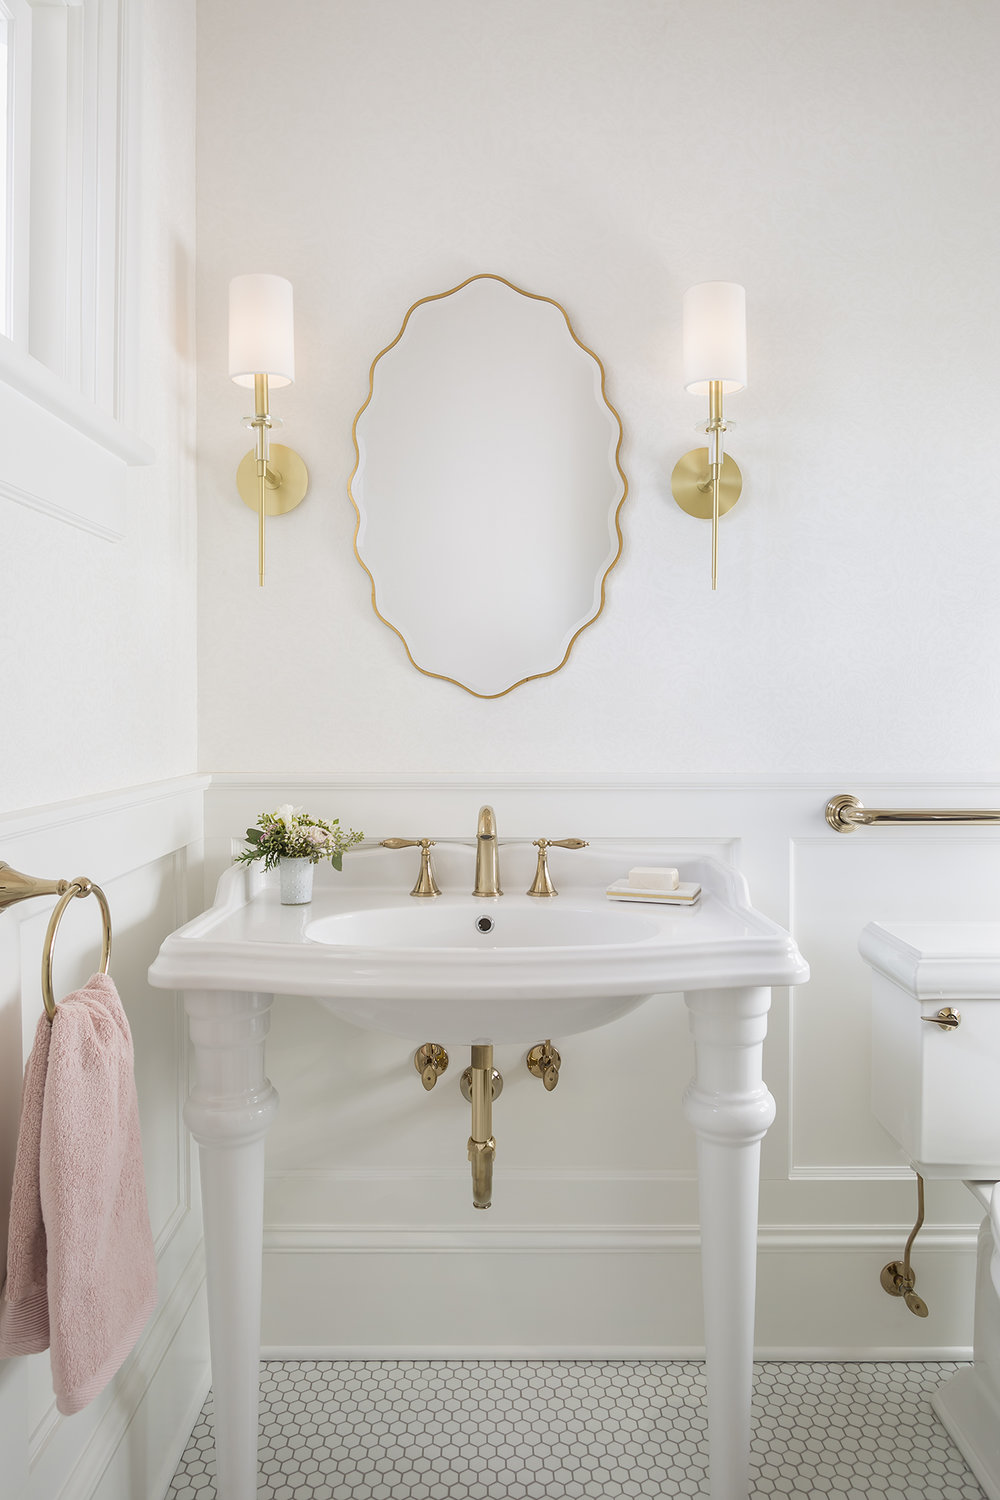 A porcelain console sink paired with a traditional brass widespread faucet contrasts with modern sconces and a whimsical mirror.